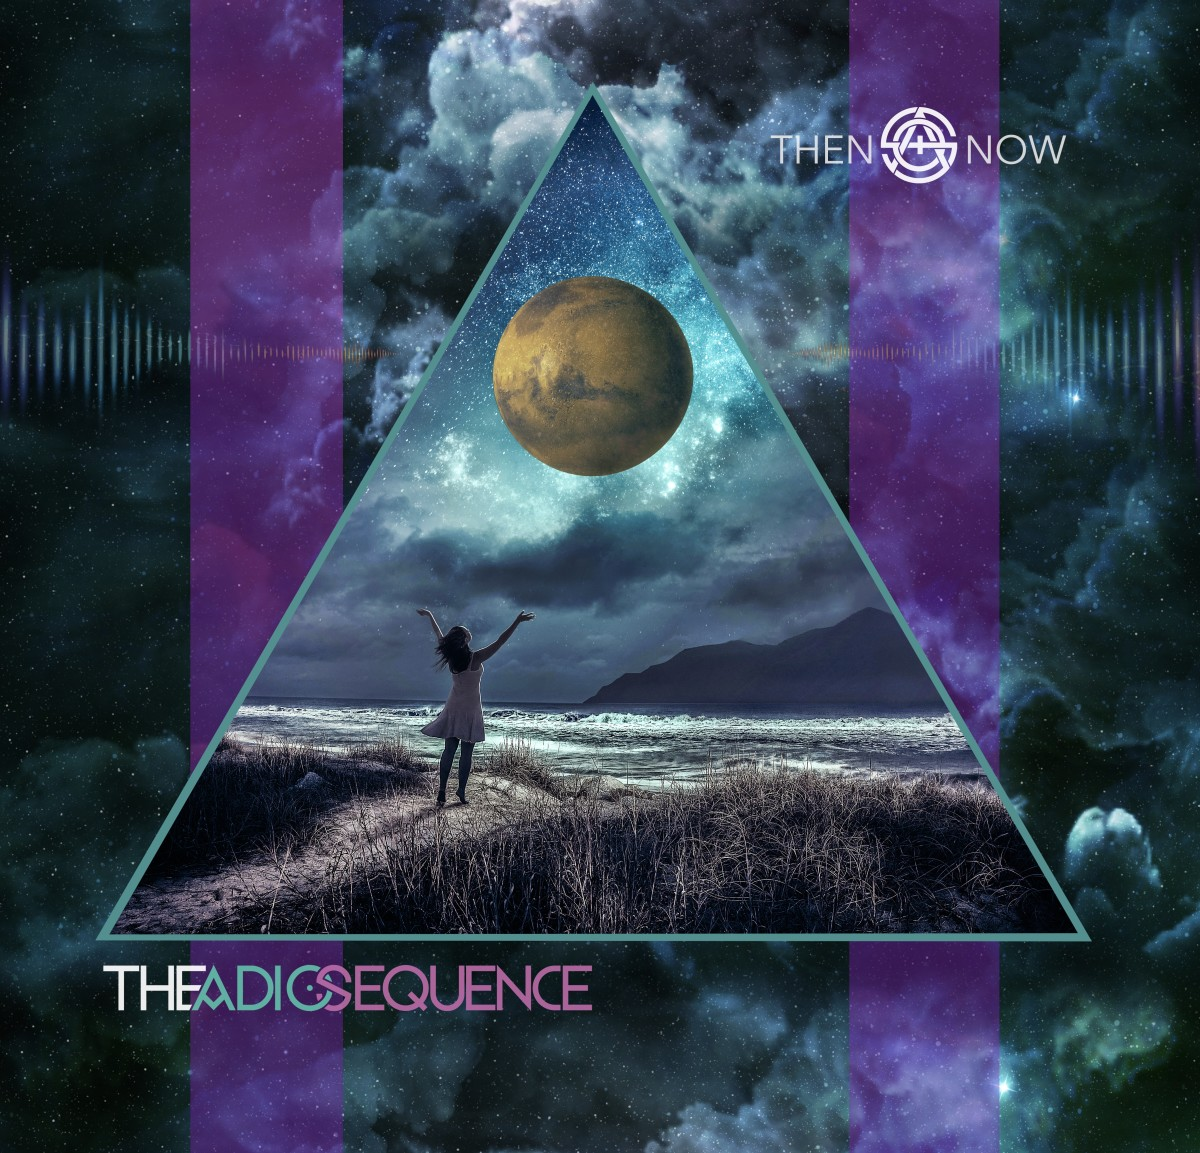 Then & Now, the new album by The Adio Sequence. Artwork created by Josh Myer.